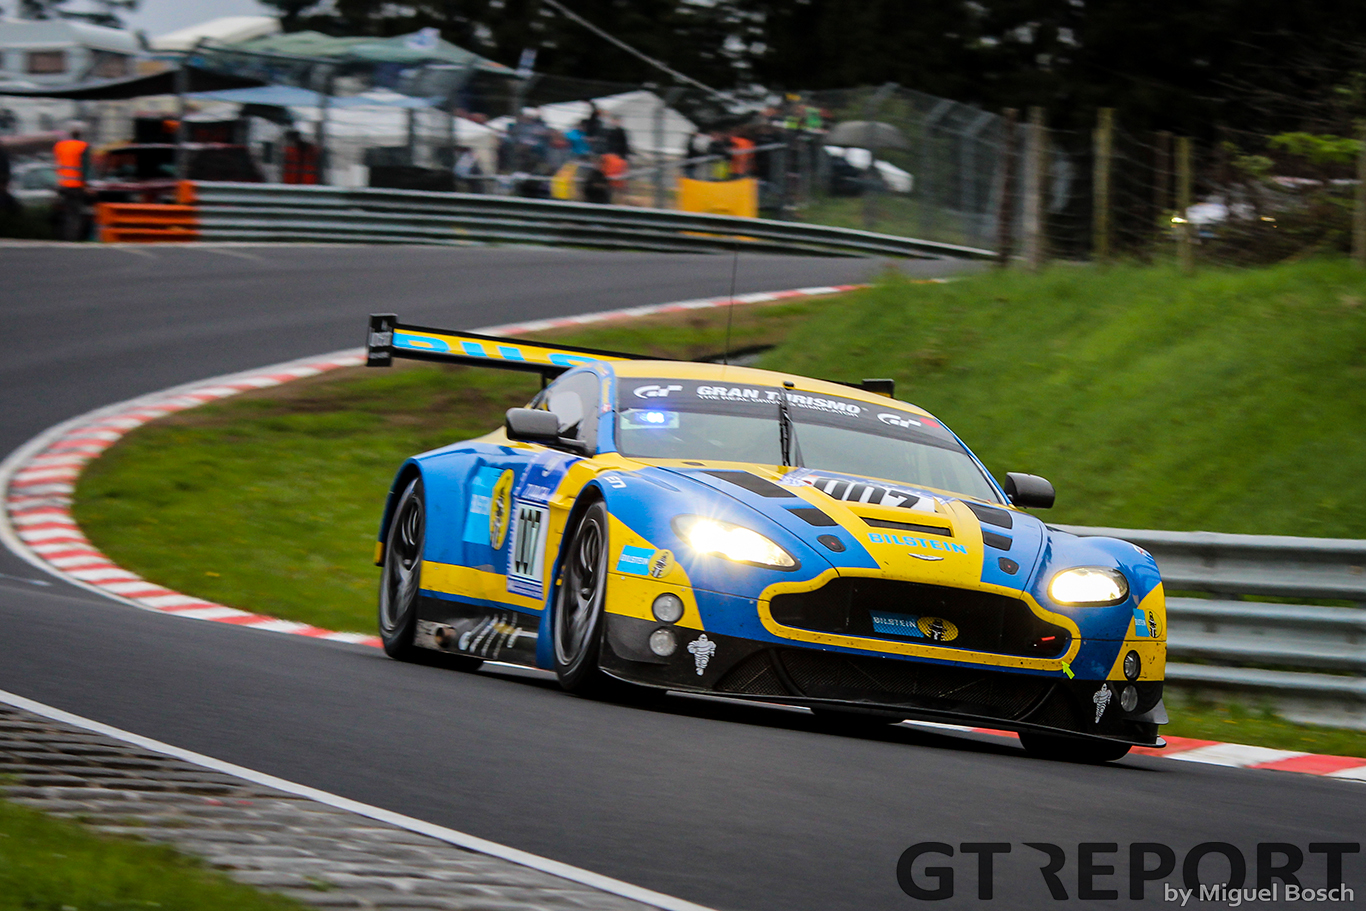 Tech analysis: Aston Martin Vantage GT3 | GT REPORT